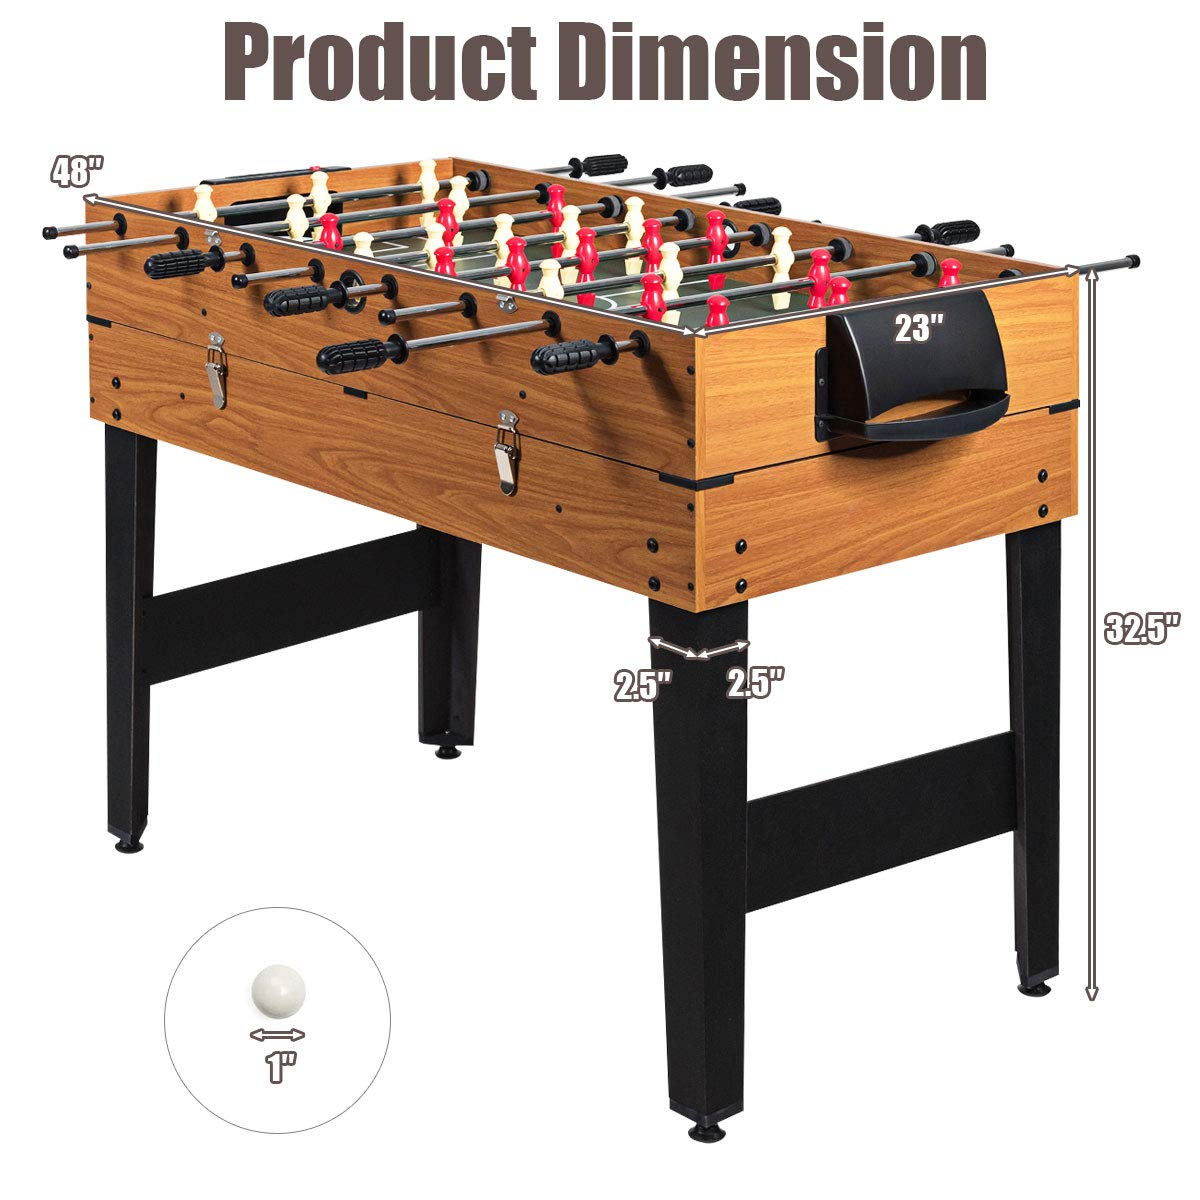 Giantex 48″ 3 in 1 Game Table